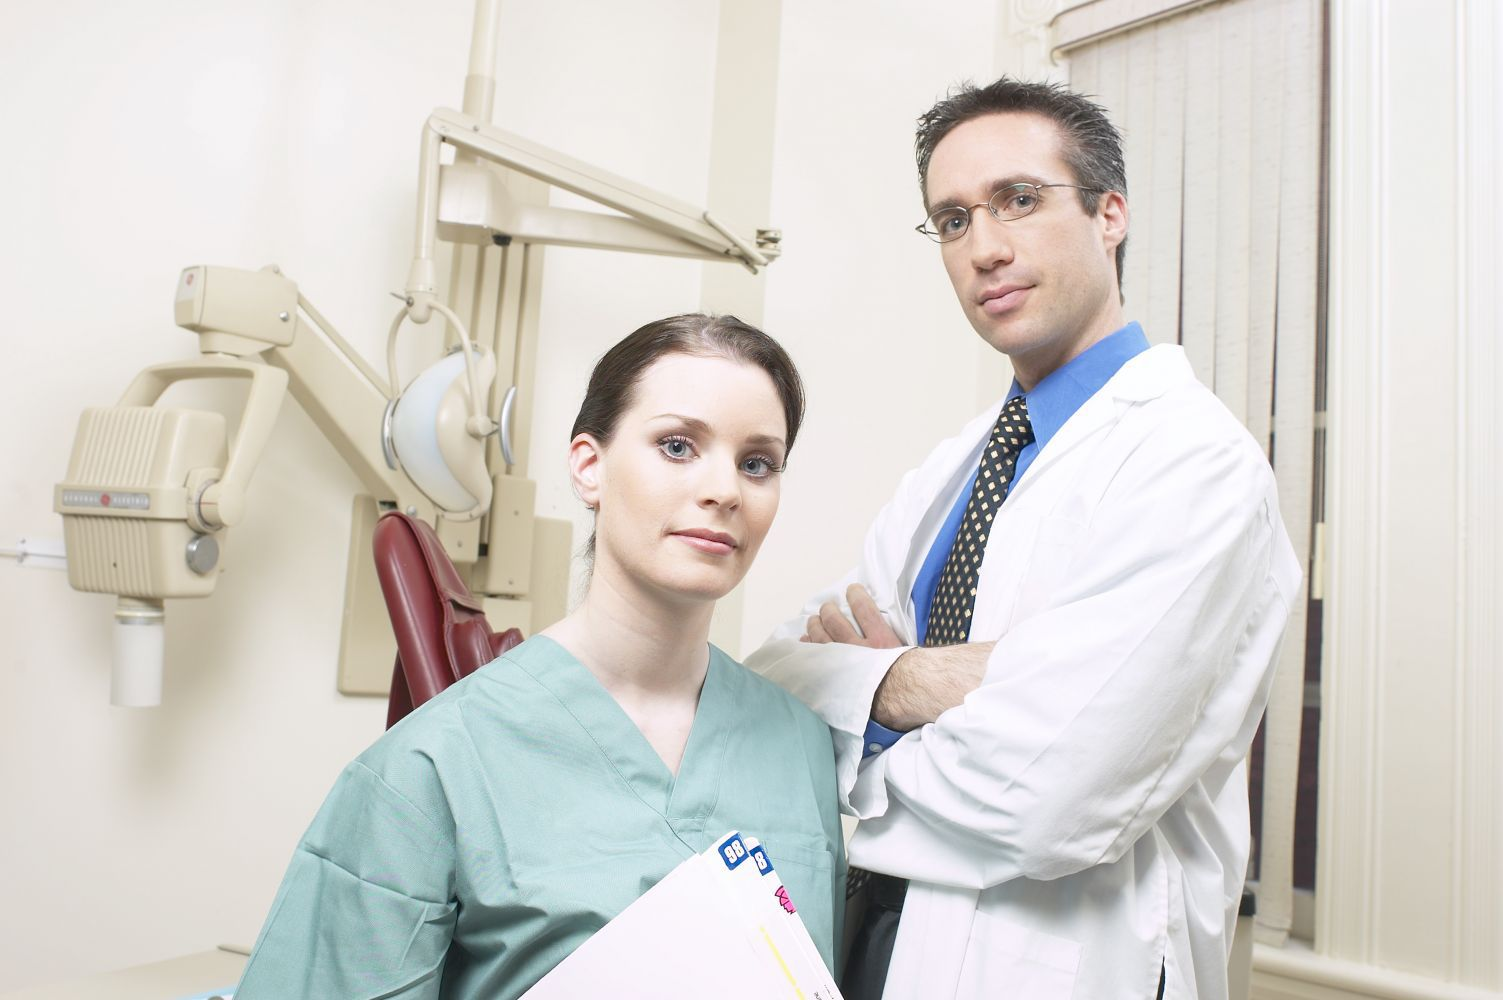 Dentist and his assistant providing dental health services in Anchorage, AK